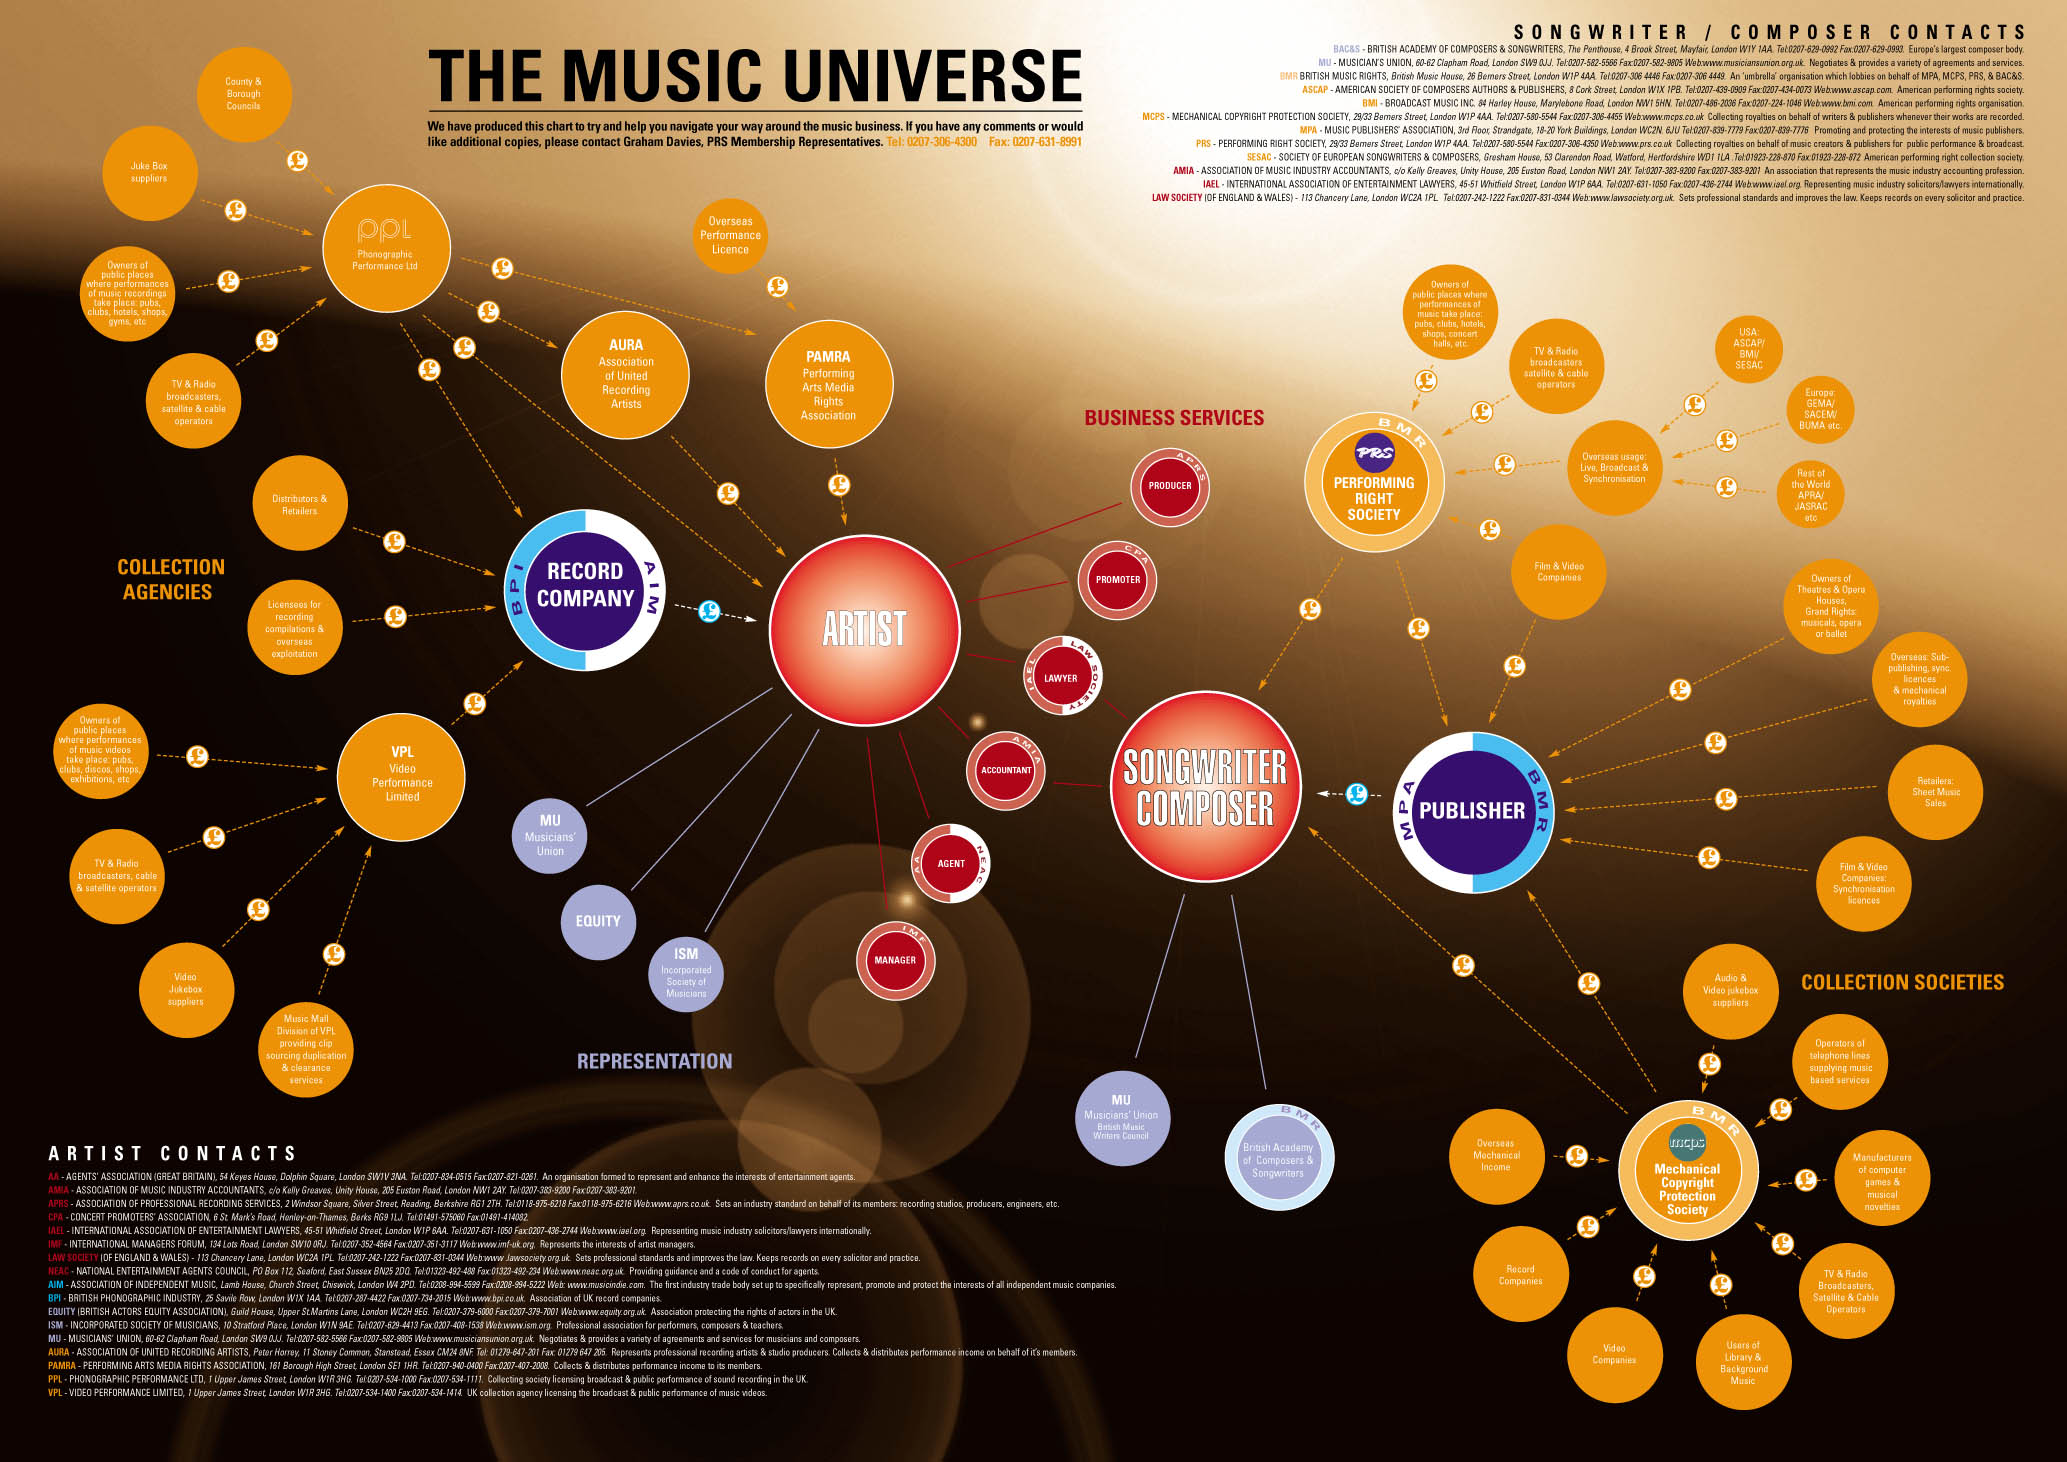 A depiction of the music universe from a UK perspective. Courtesy PRS for Music